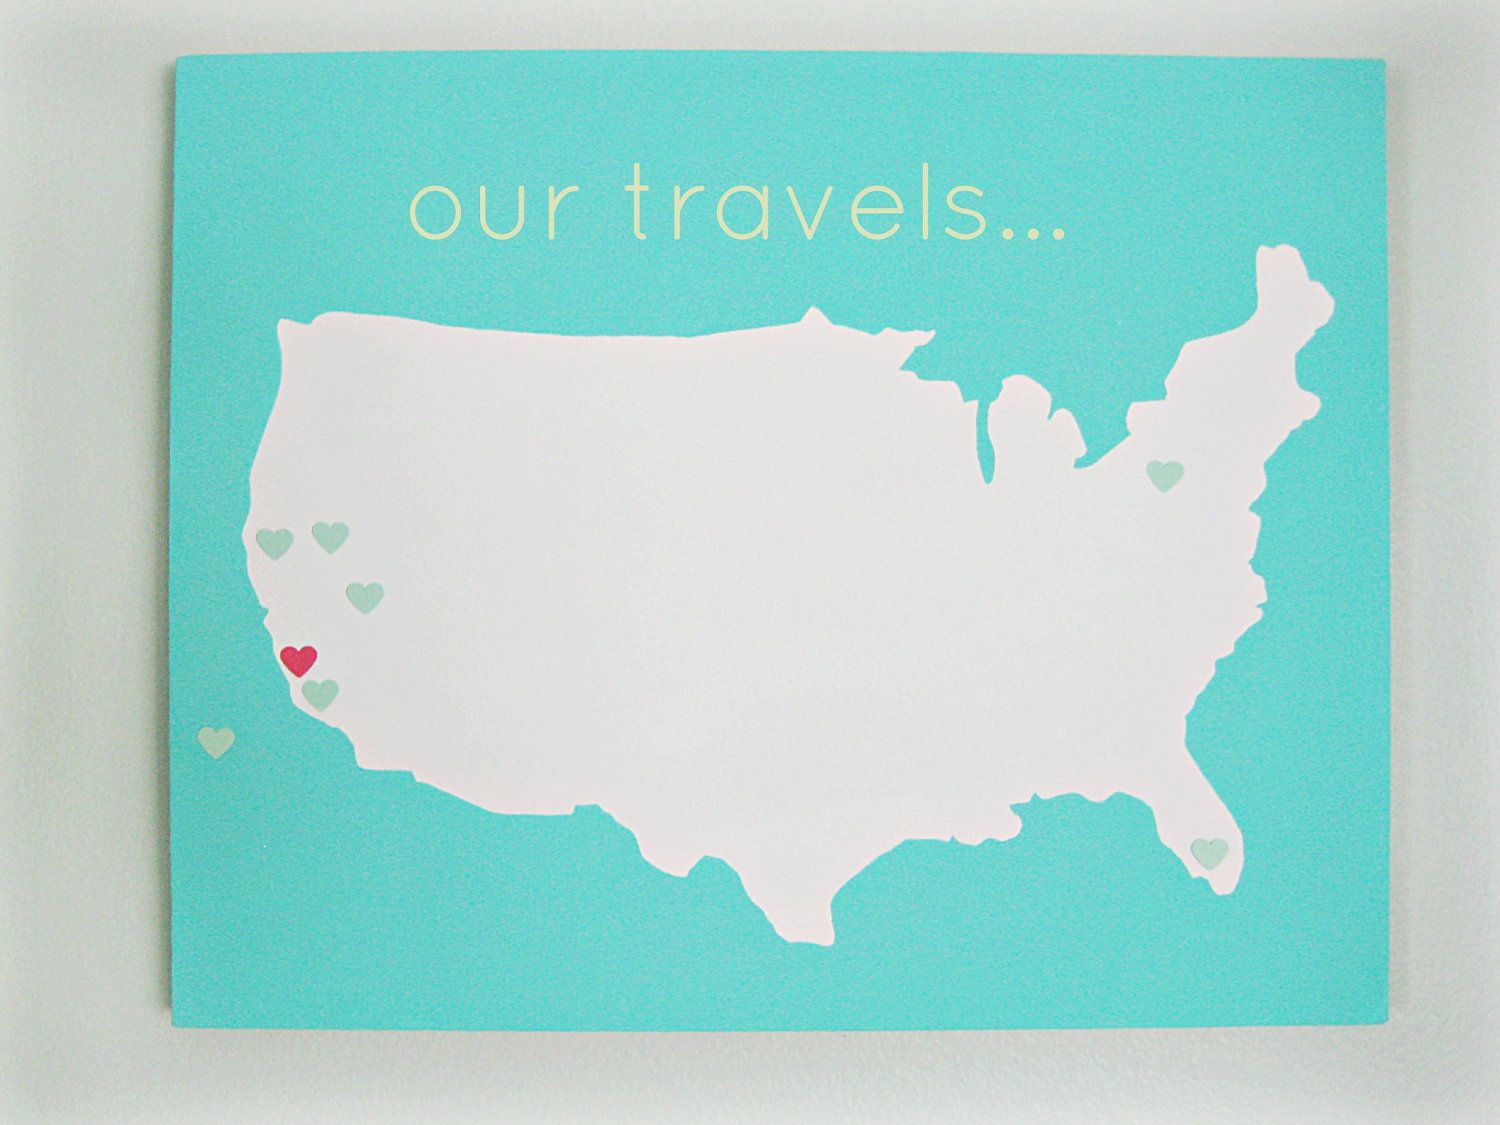 Best Travel Wall Ideas Images On Pinterest Wall Ideas - Us states traveled map